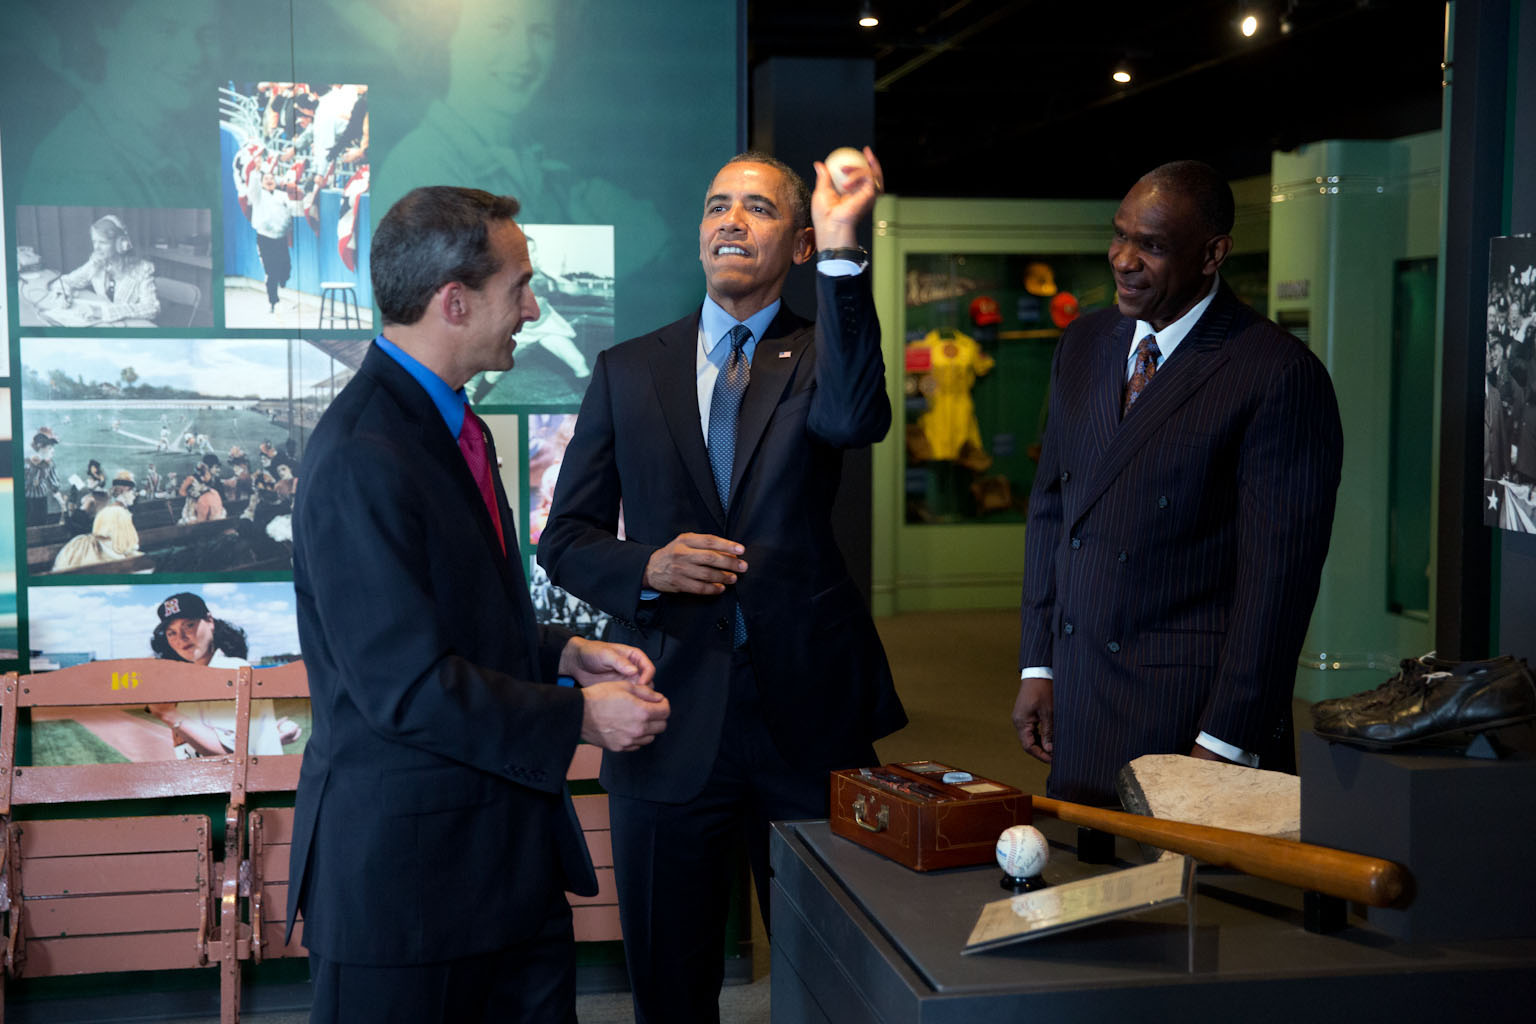 President Barack Obama feigns throwing a ball during a tour of the Baseball Hall of Fame in Cooperstown, N.Y., May 22, 2014.